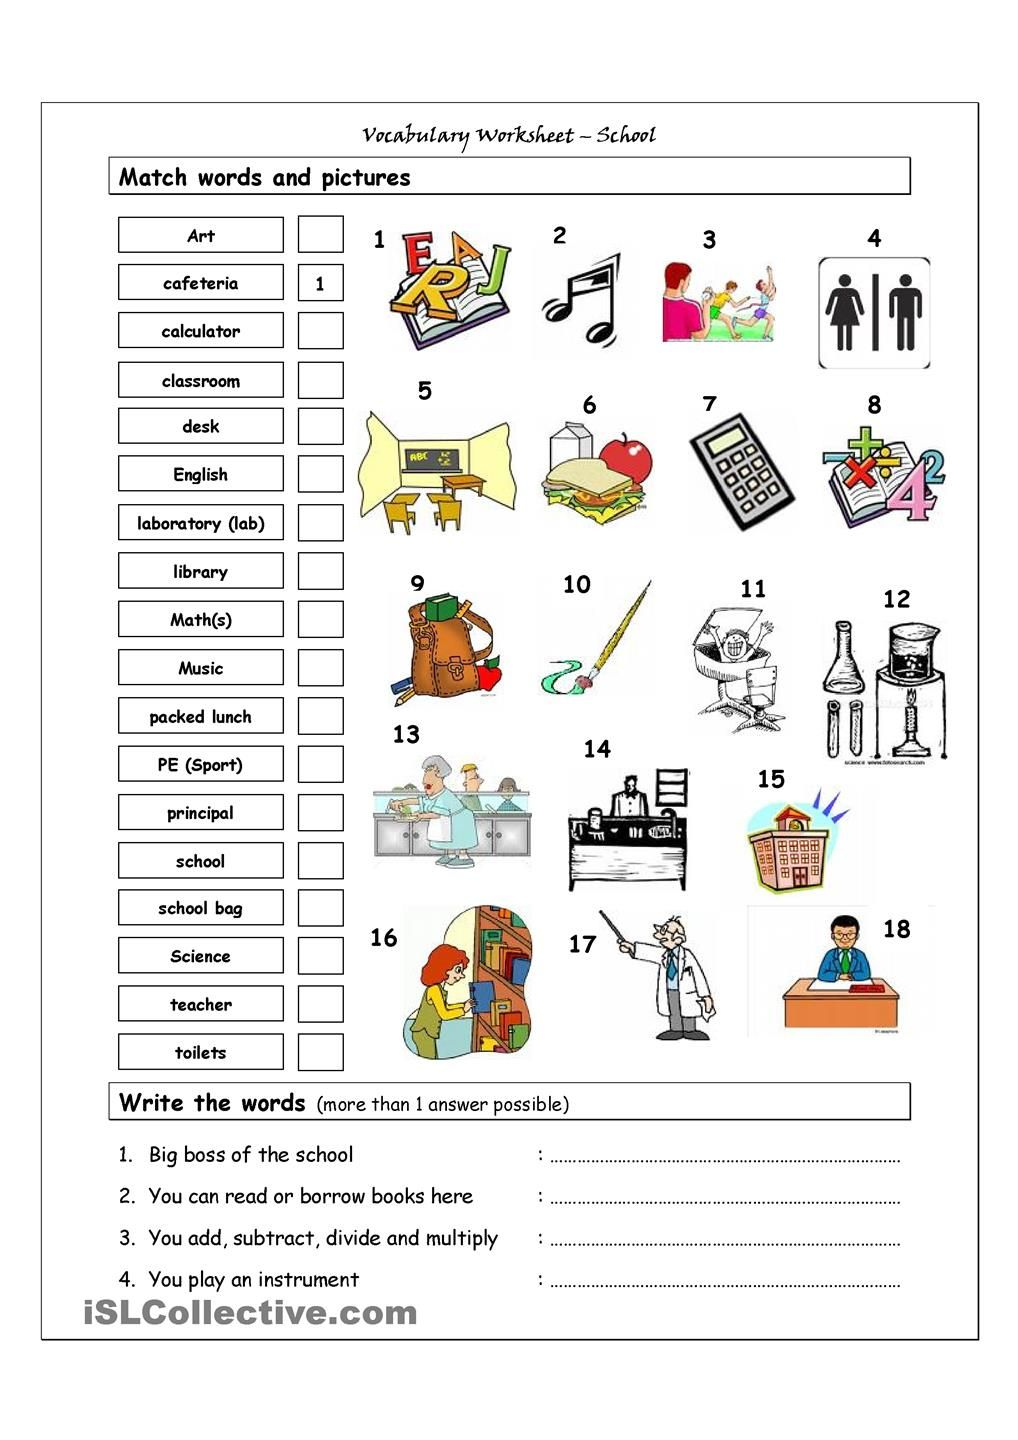 small resolution of Vocabulary Matching Worksheet - SCHOOL   School worksheets